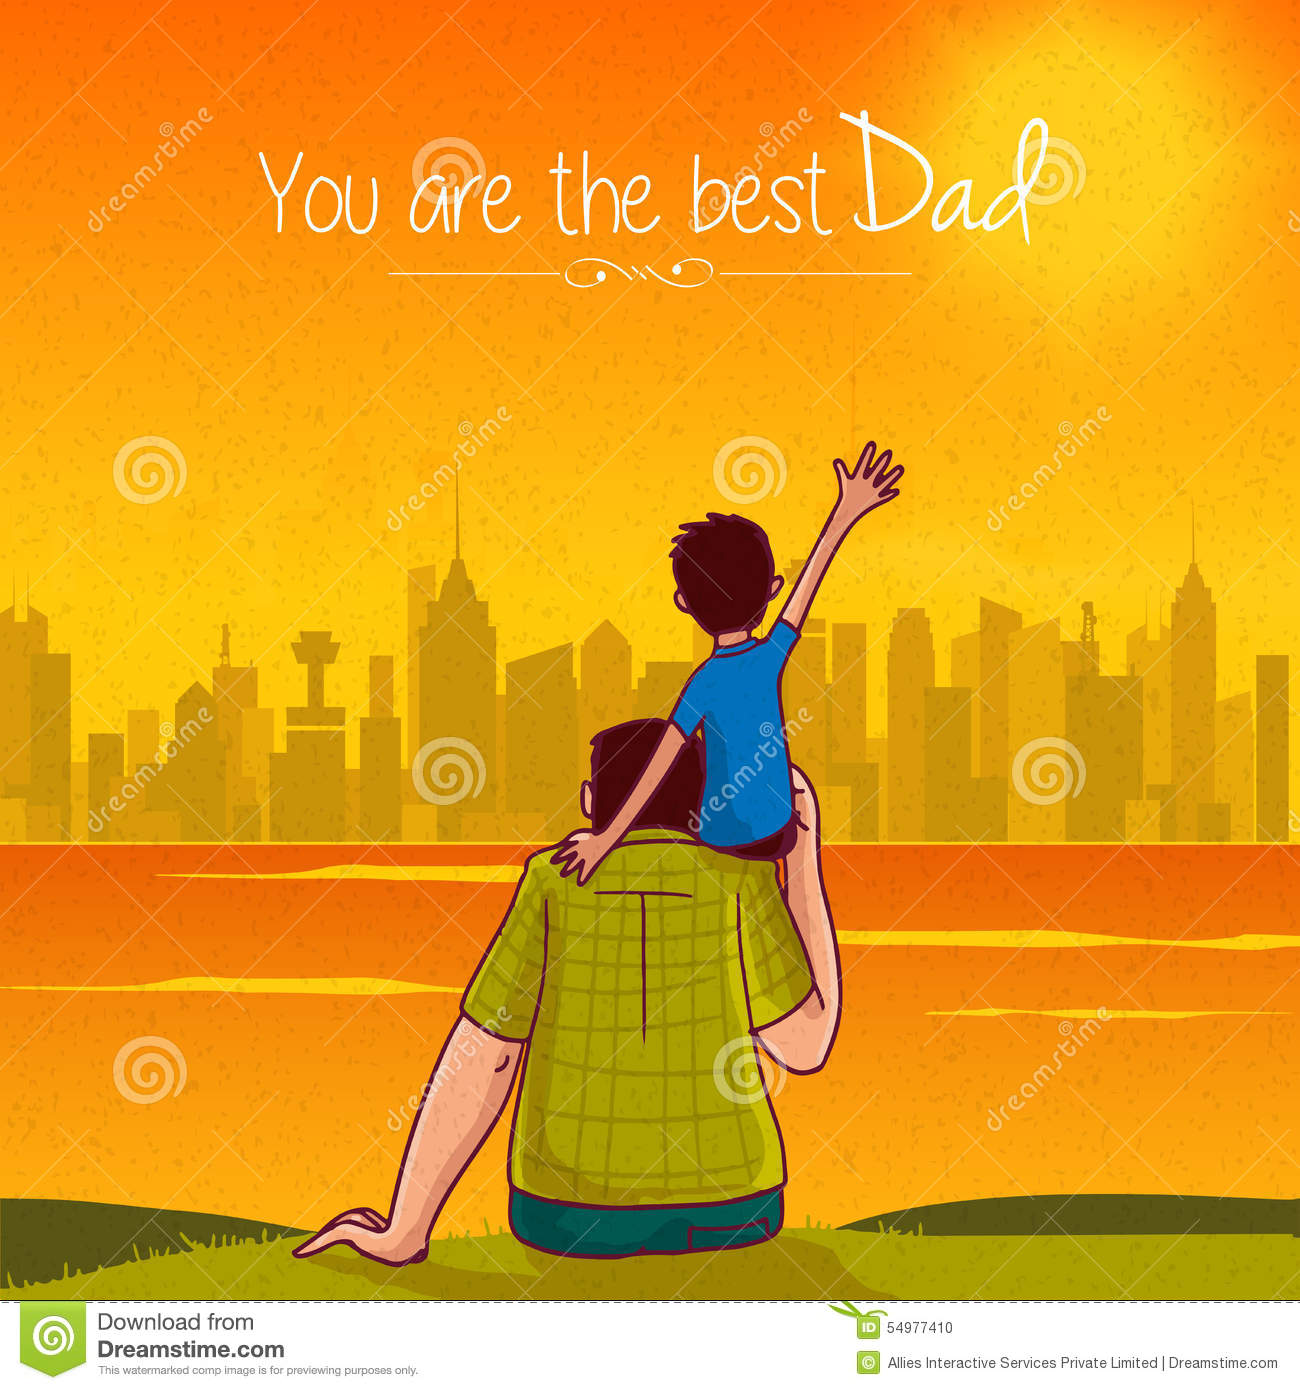 Fathers day greeting card with son and father stock illustration fathers day greeting card with son and father m4hsunfo Image collections